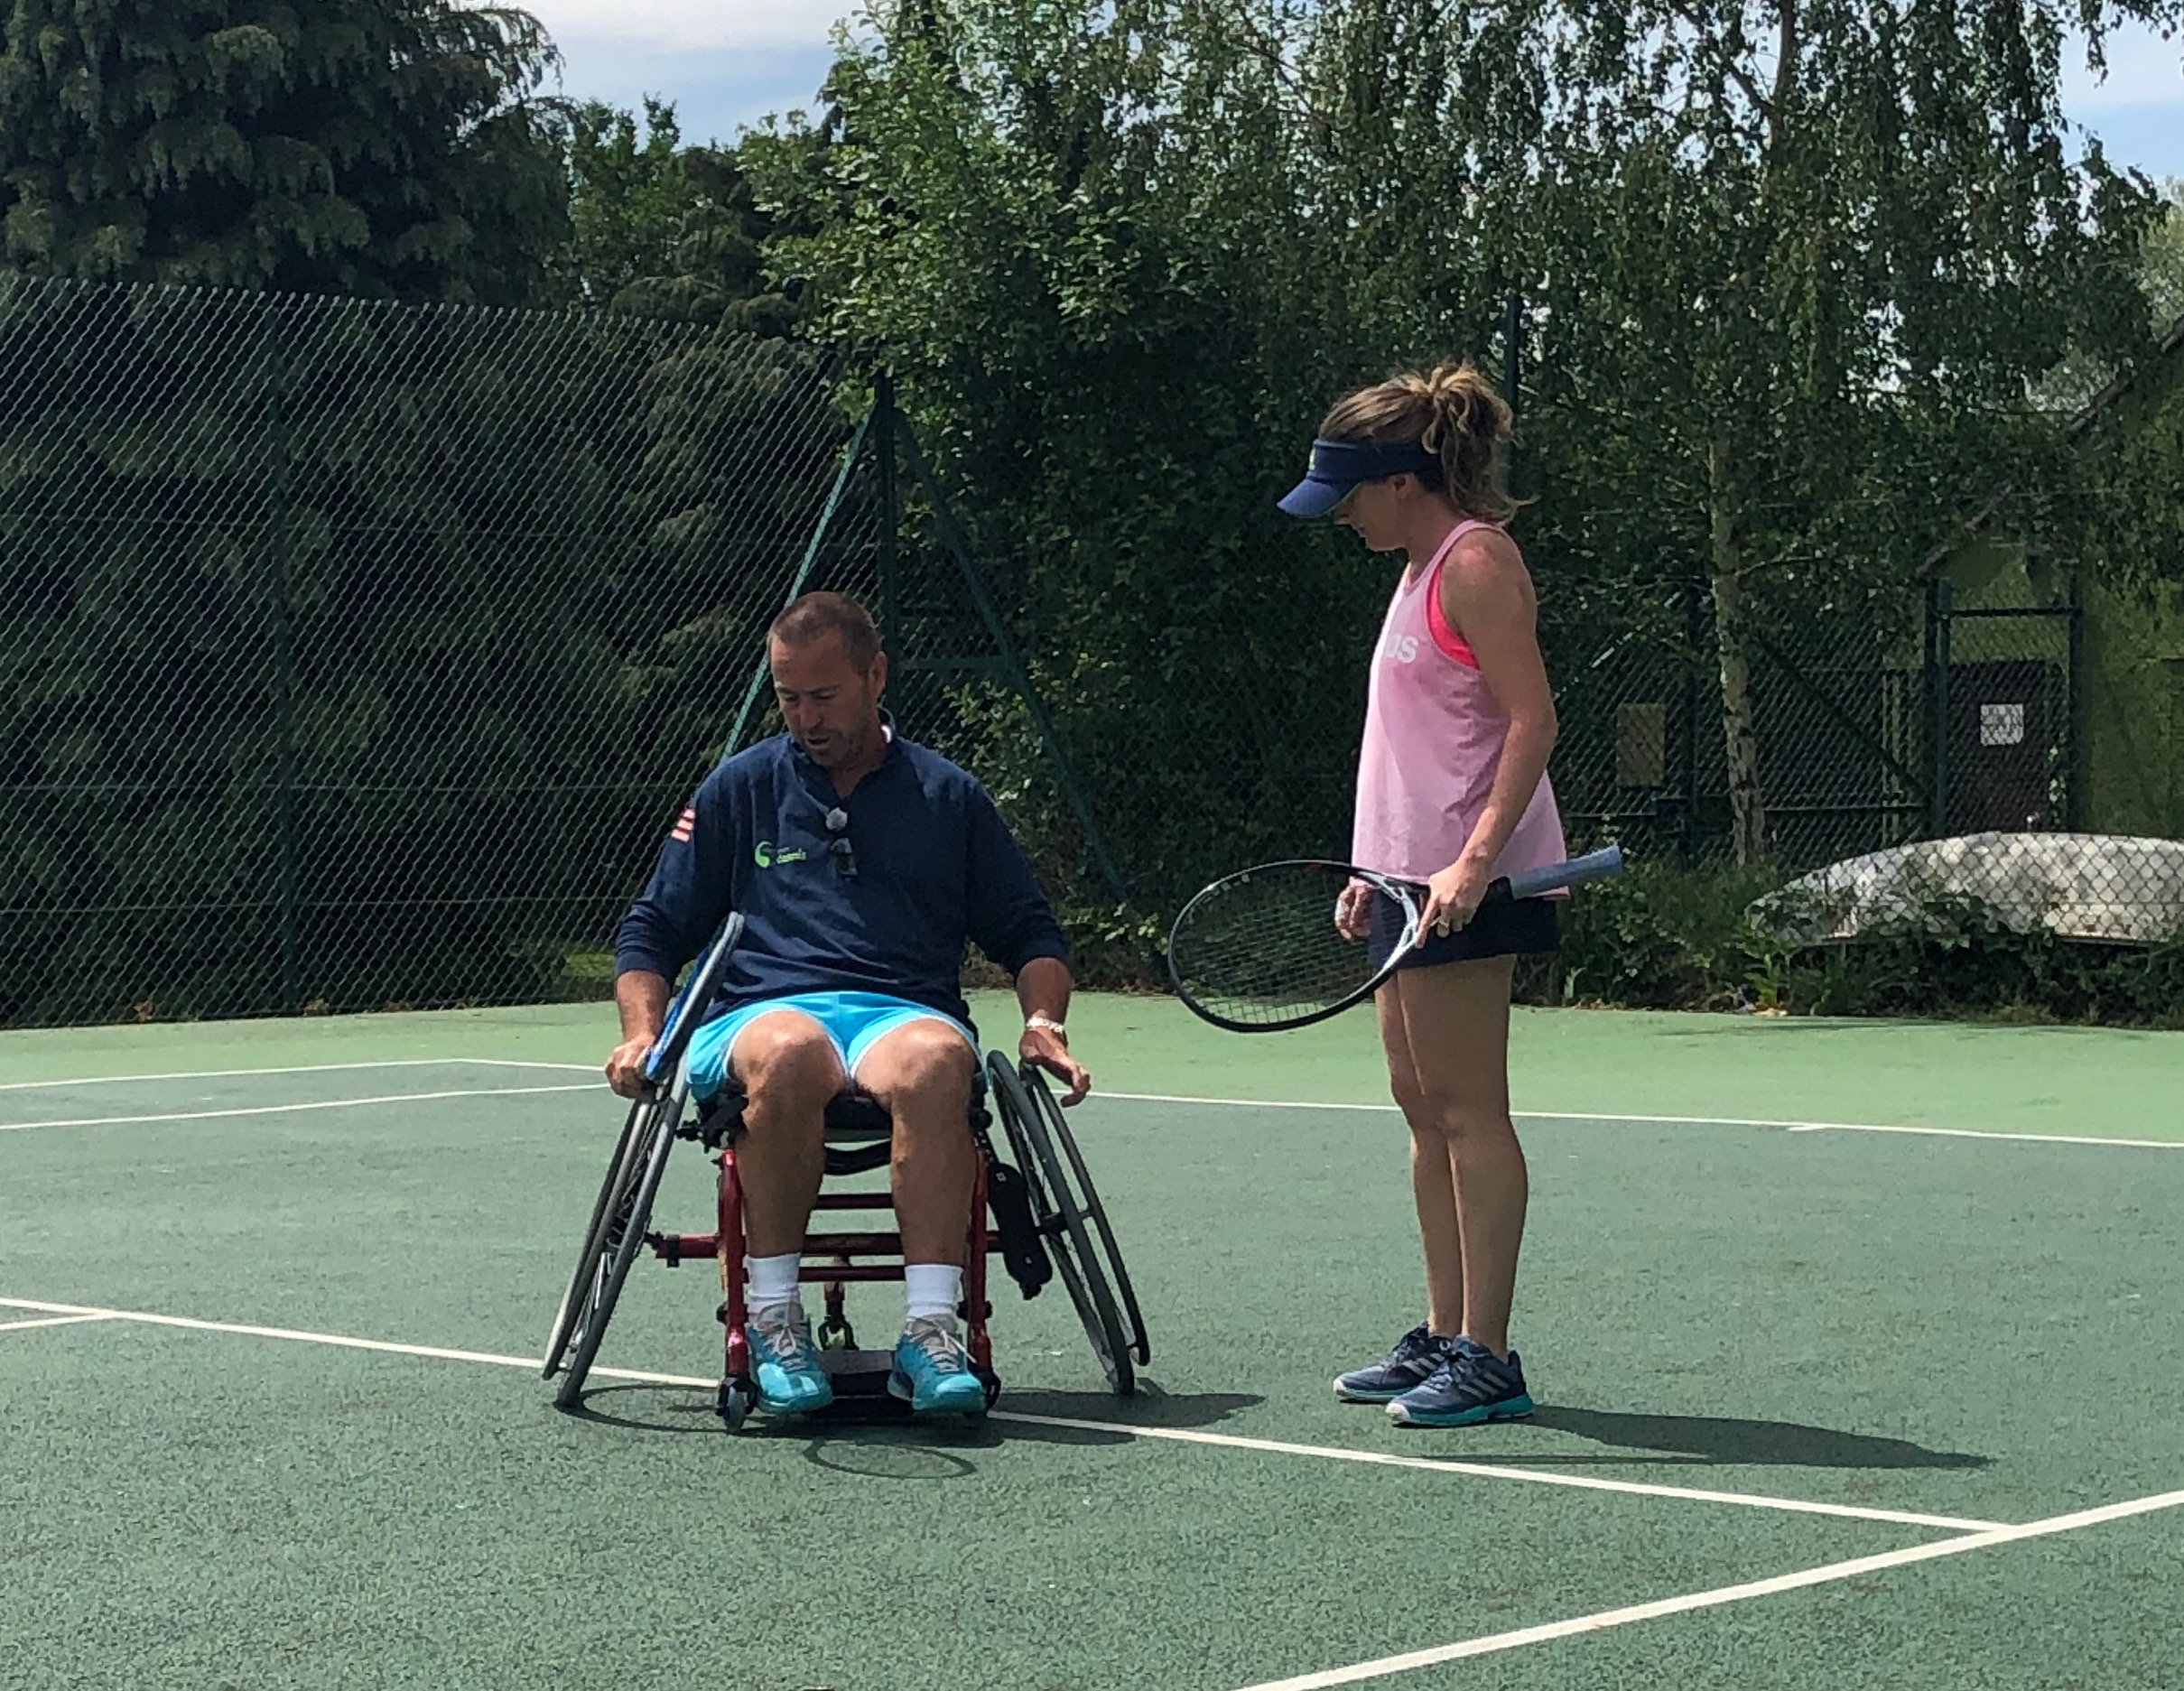 Bright Ideas for Tennis supports inclusive sports